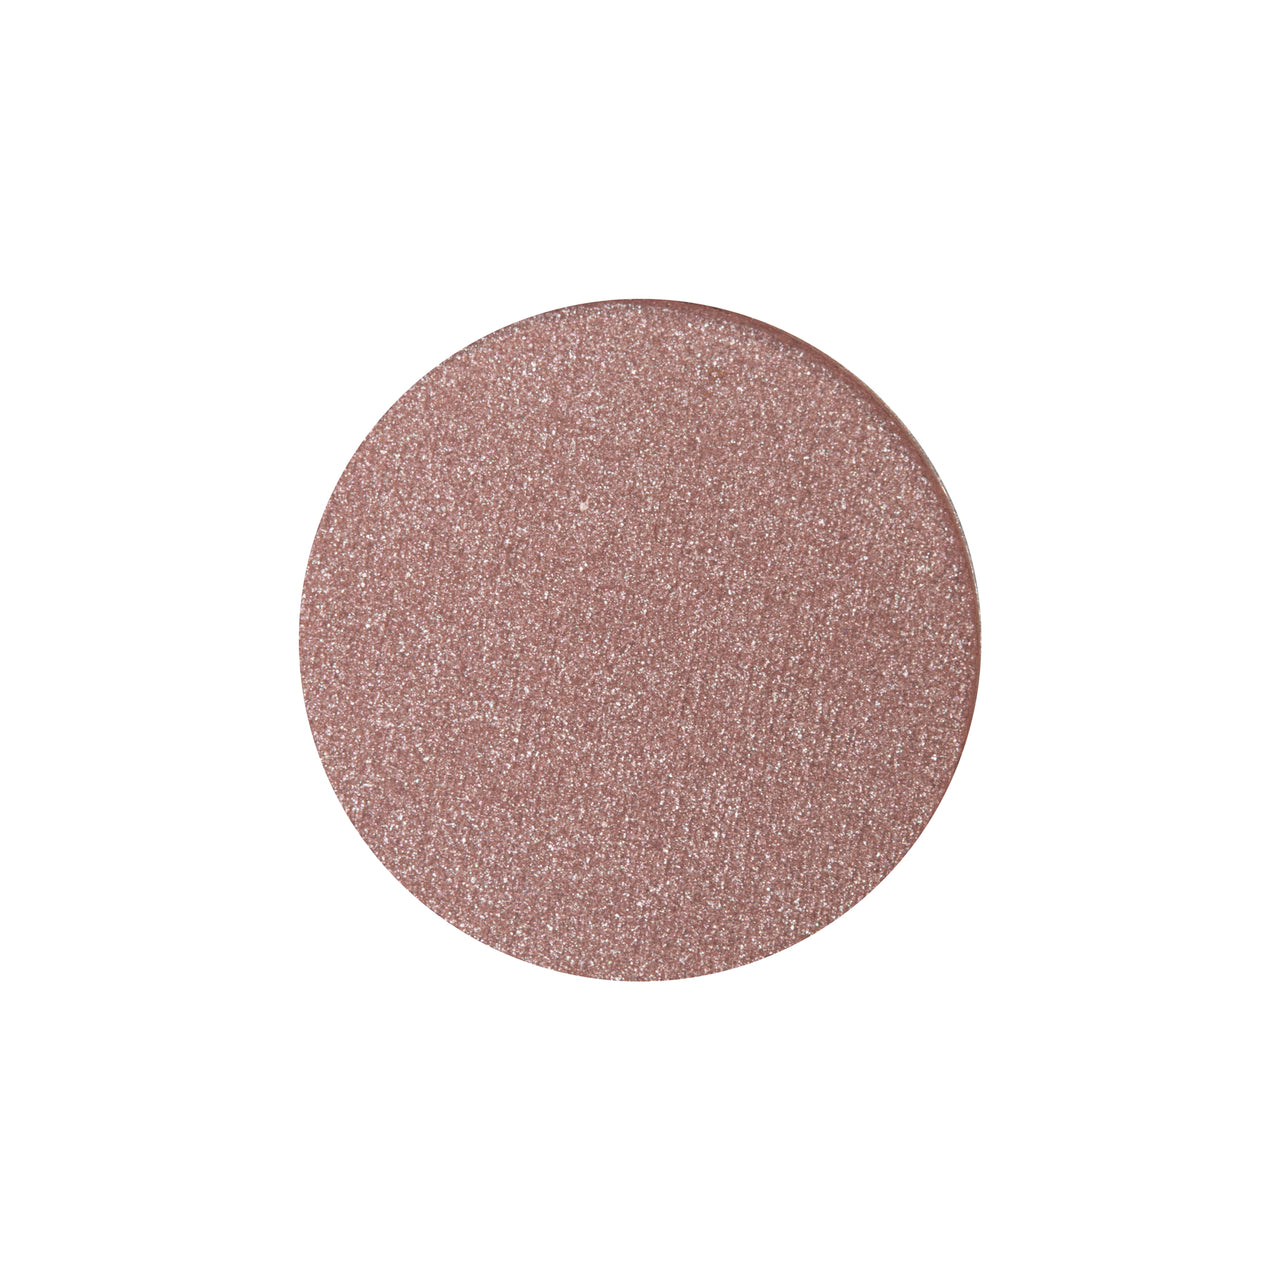 Soho Eye Shadow